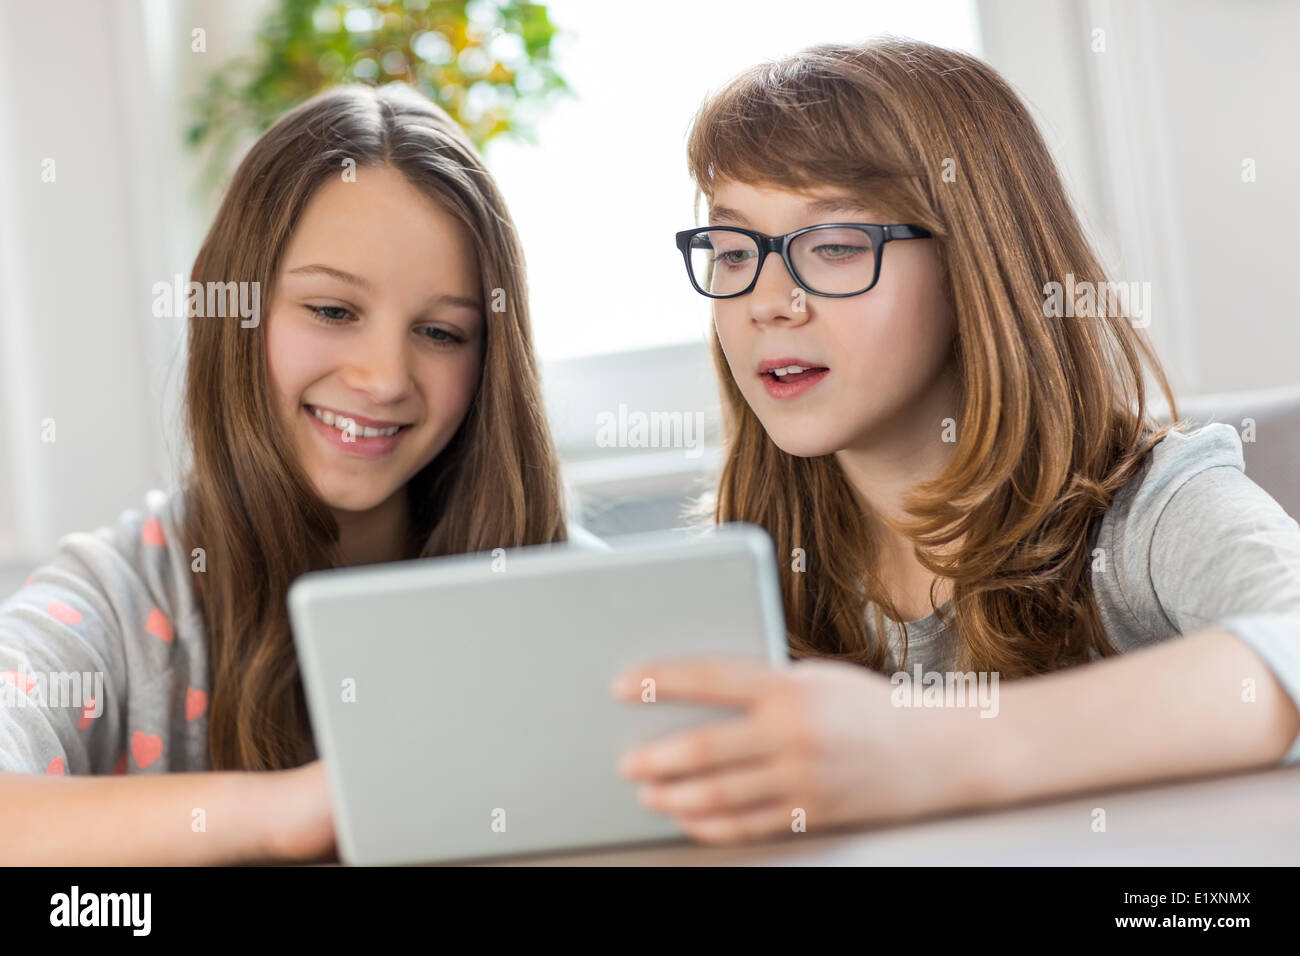 Sisters using digital tablet at table in house - Stock Image